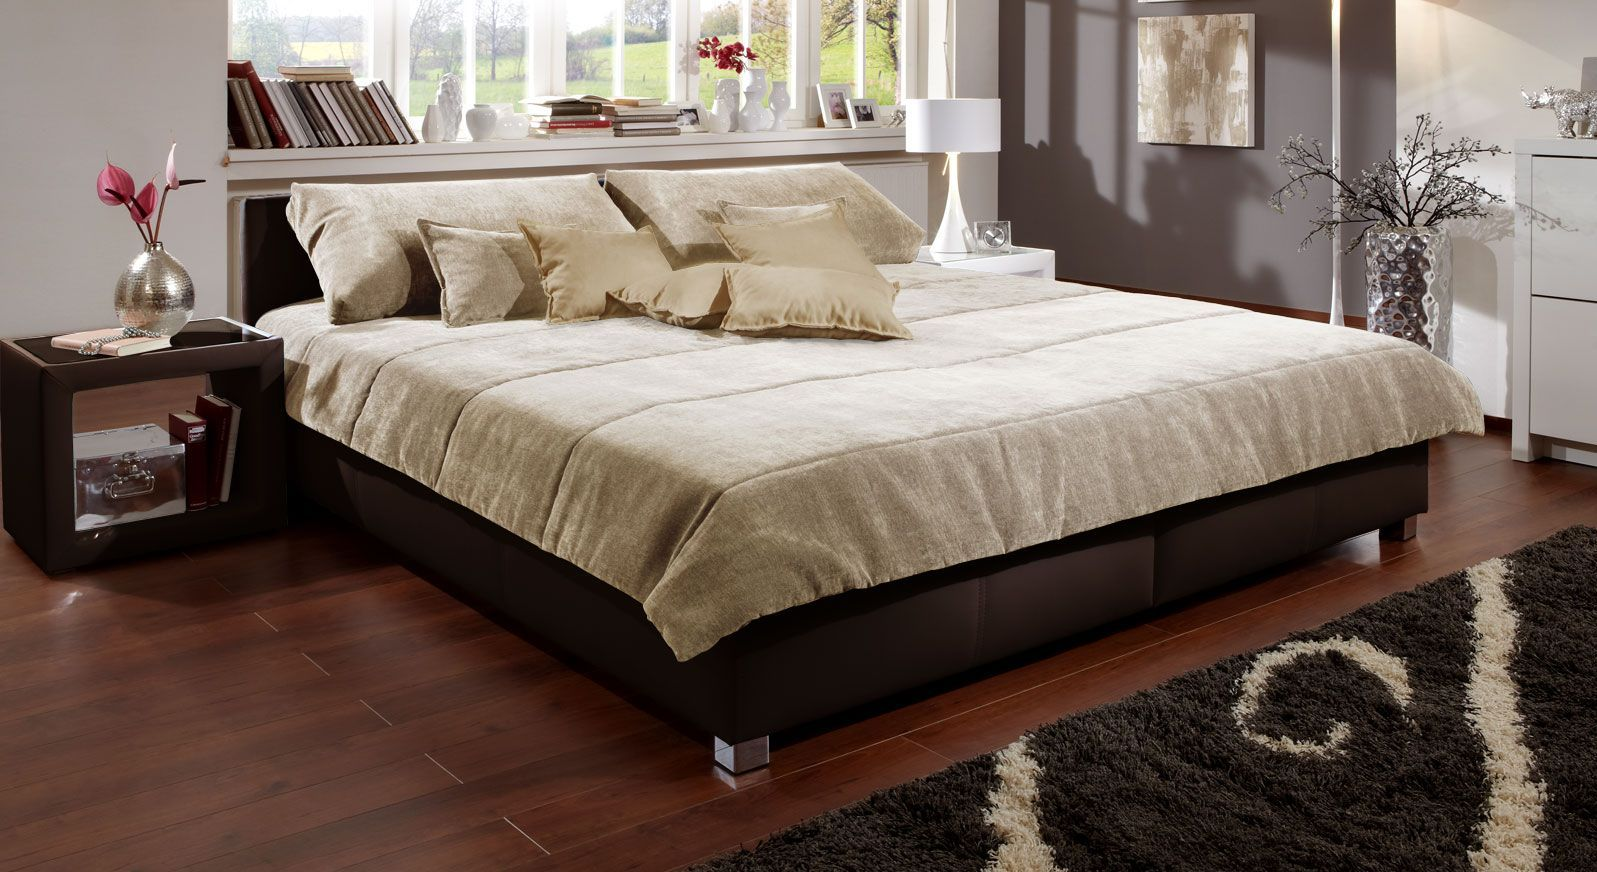 Tagesdecke Amadeo beige chenille